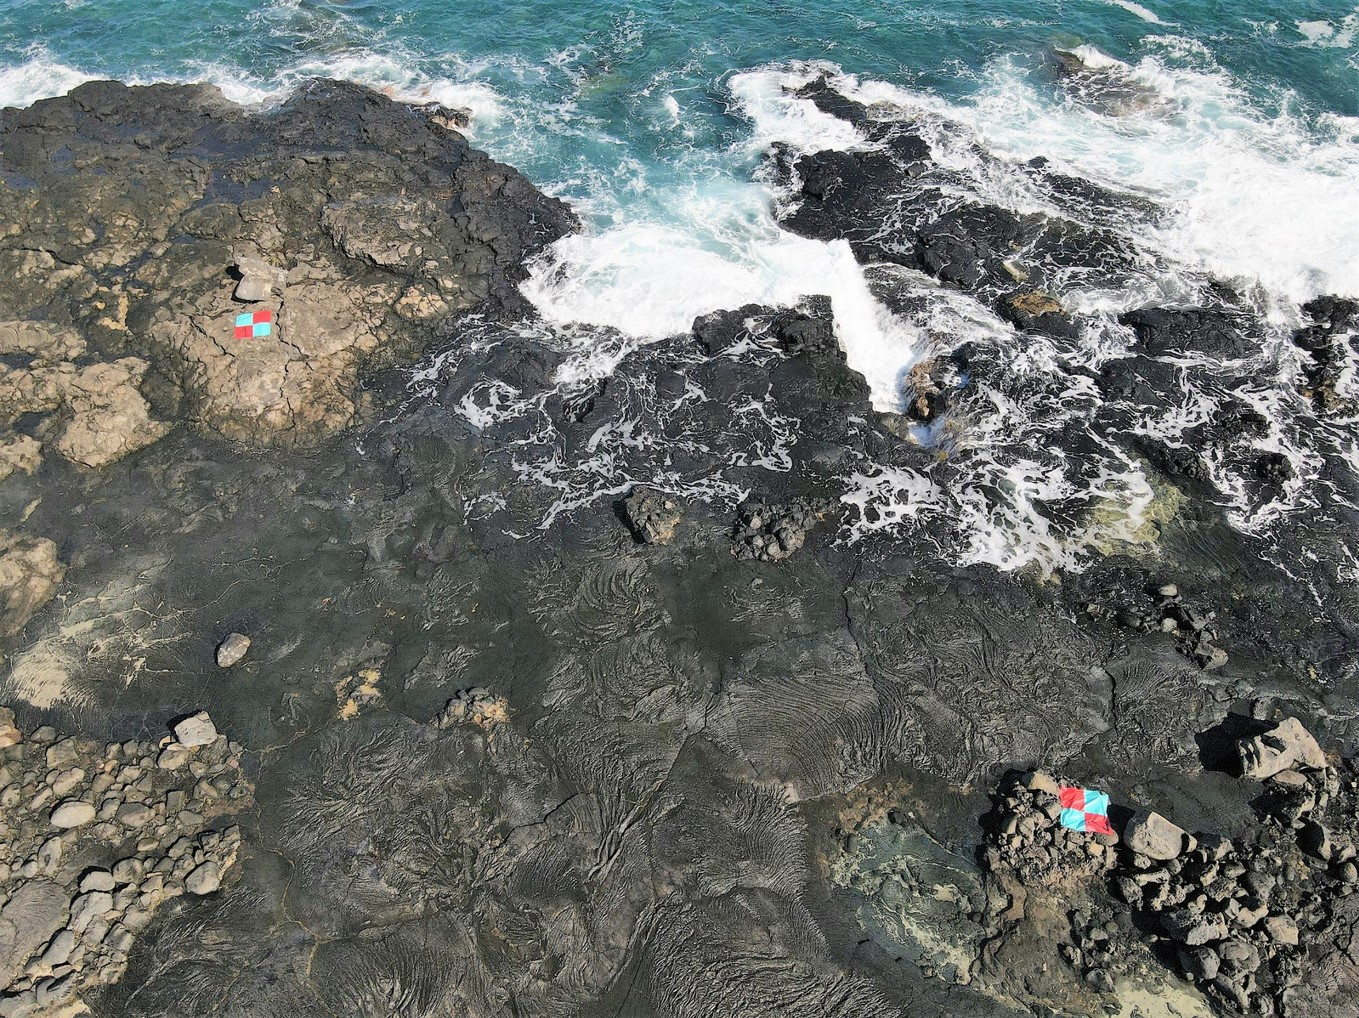 Aerial of rocky coast with two measurement markers.